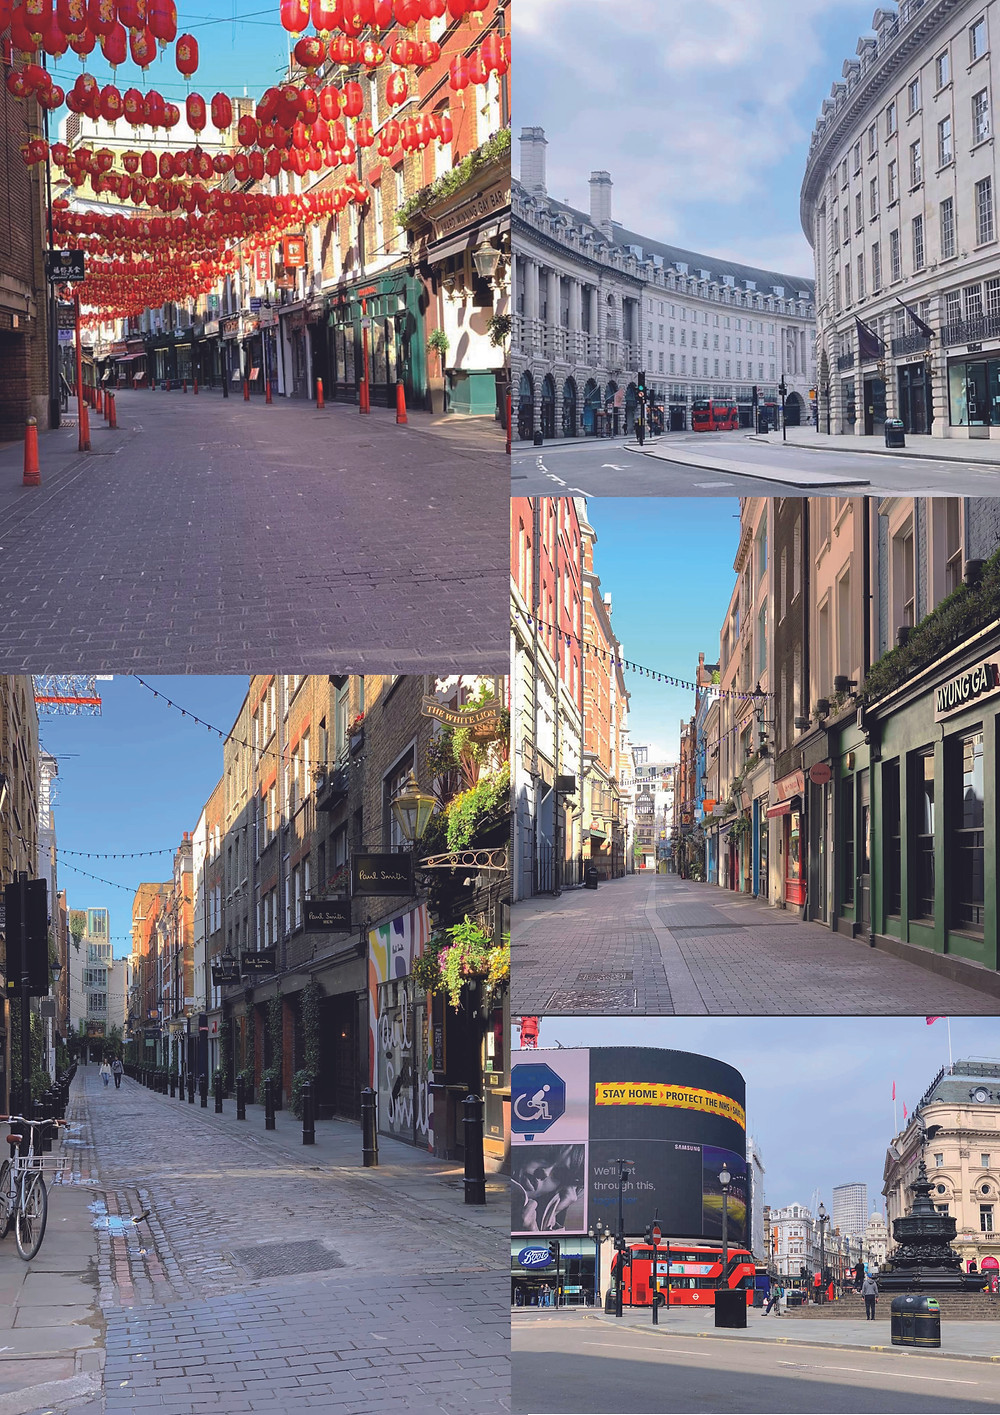 Amazing pictures of London during Covid19. Images by Michelle Pritchard.